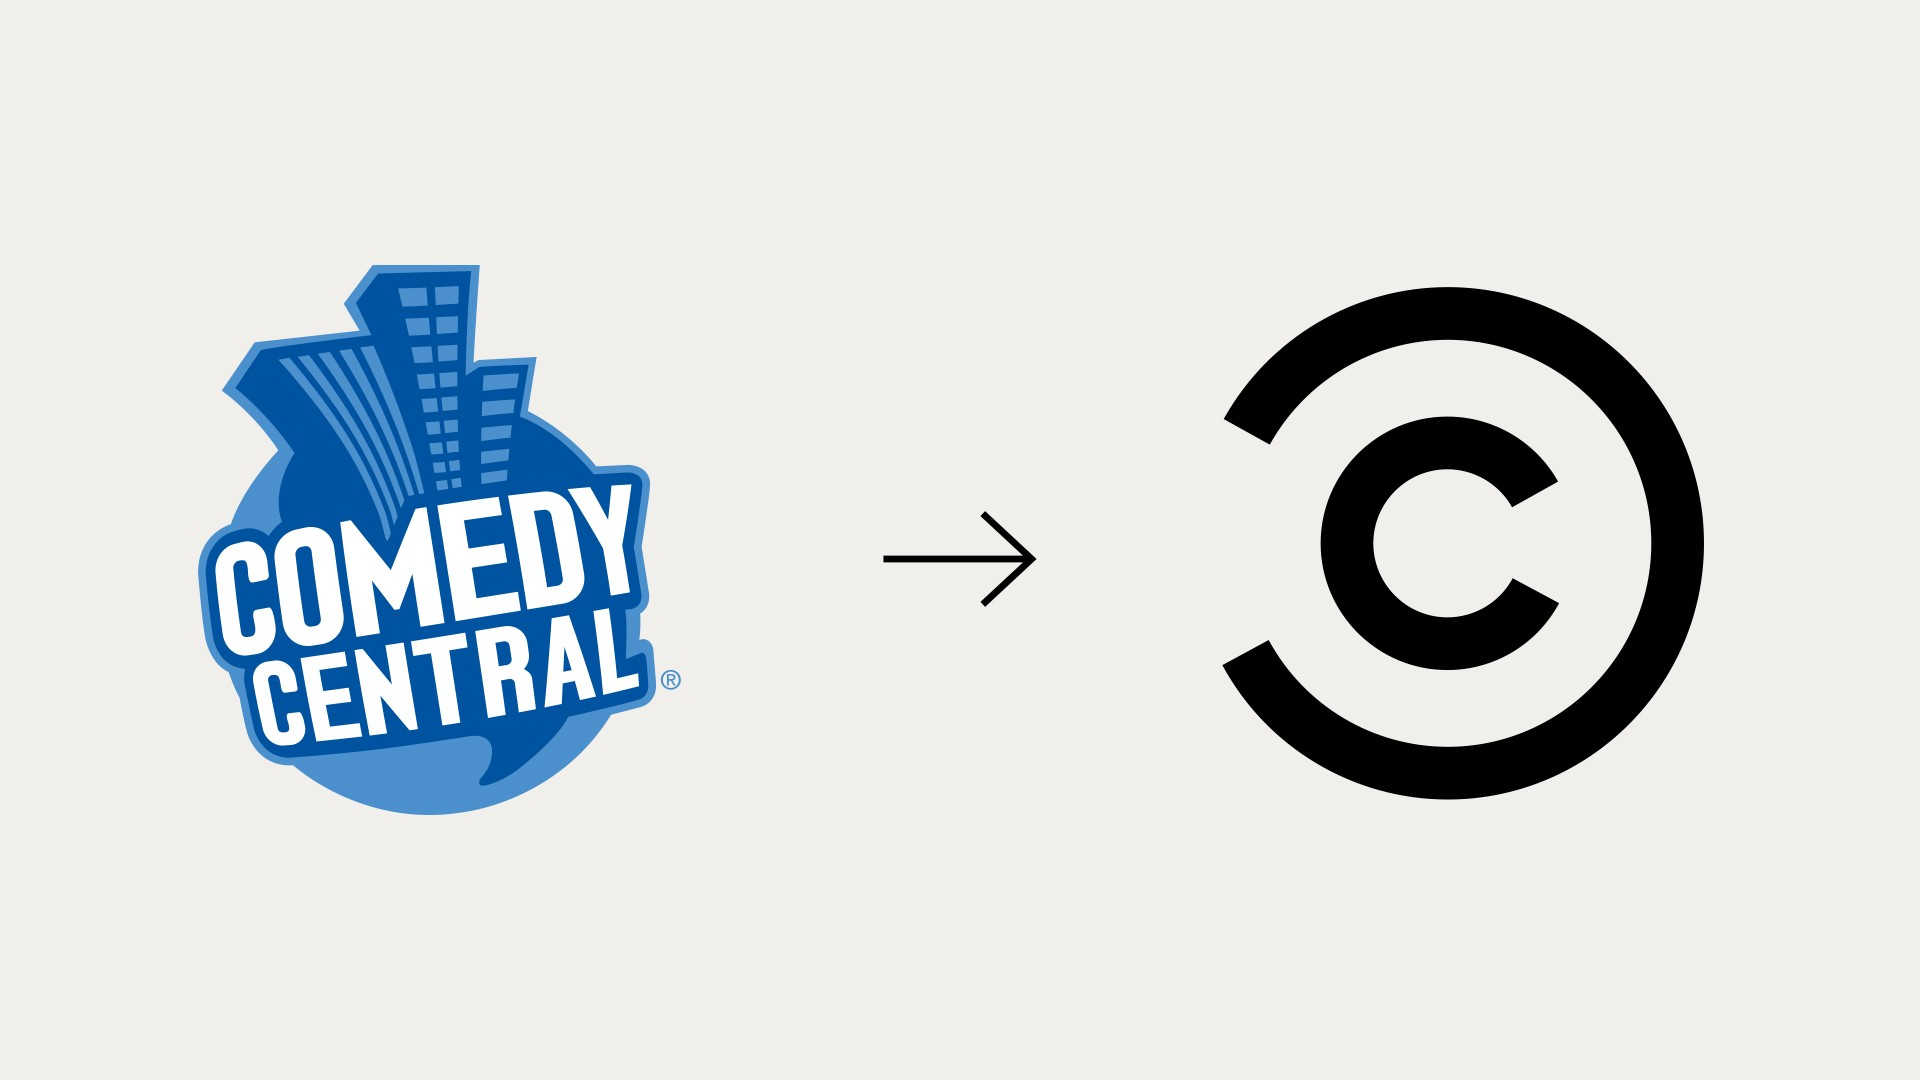 Comedy Central logo evolution